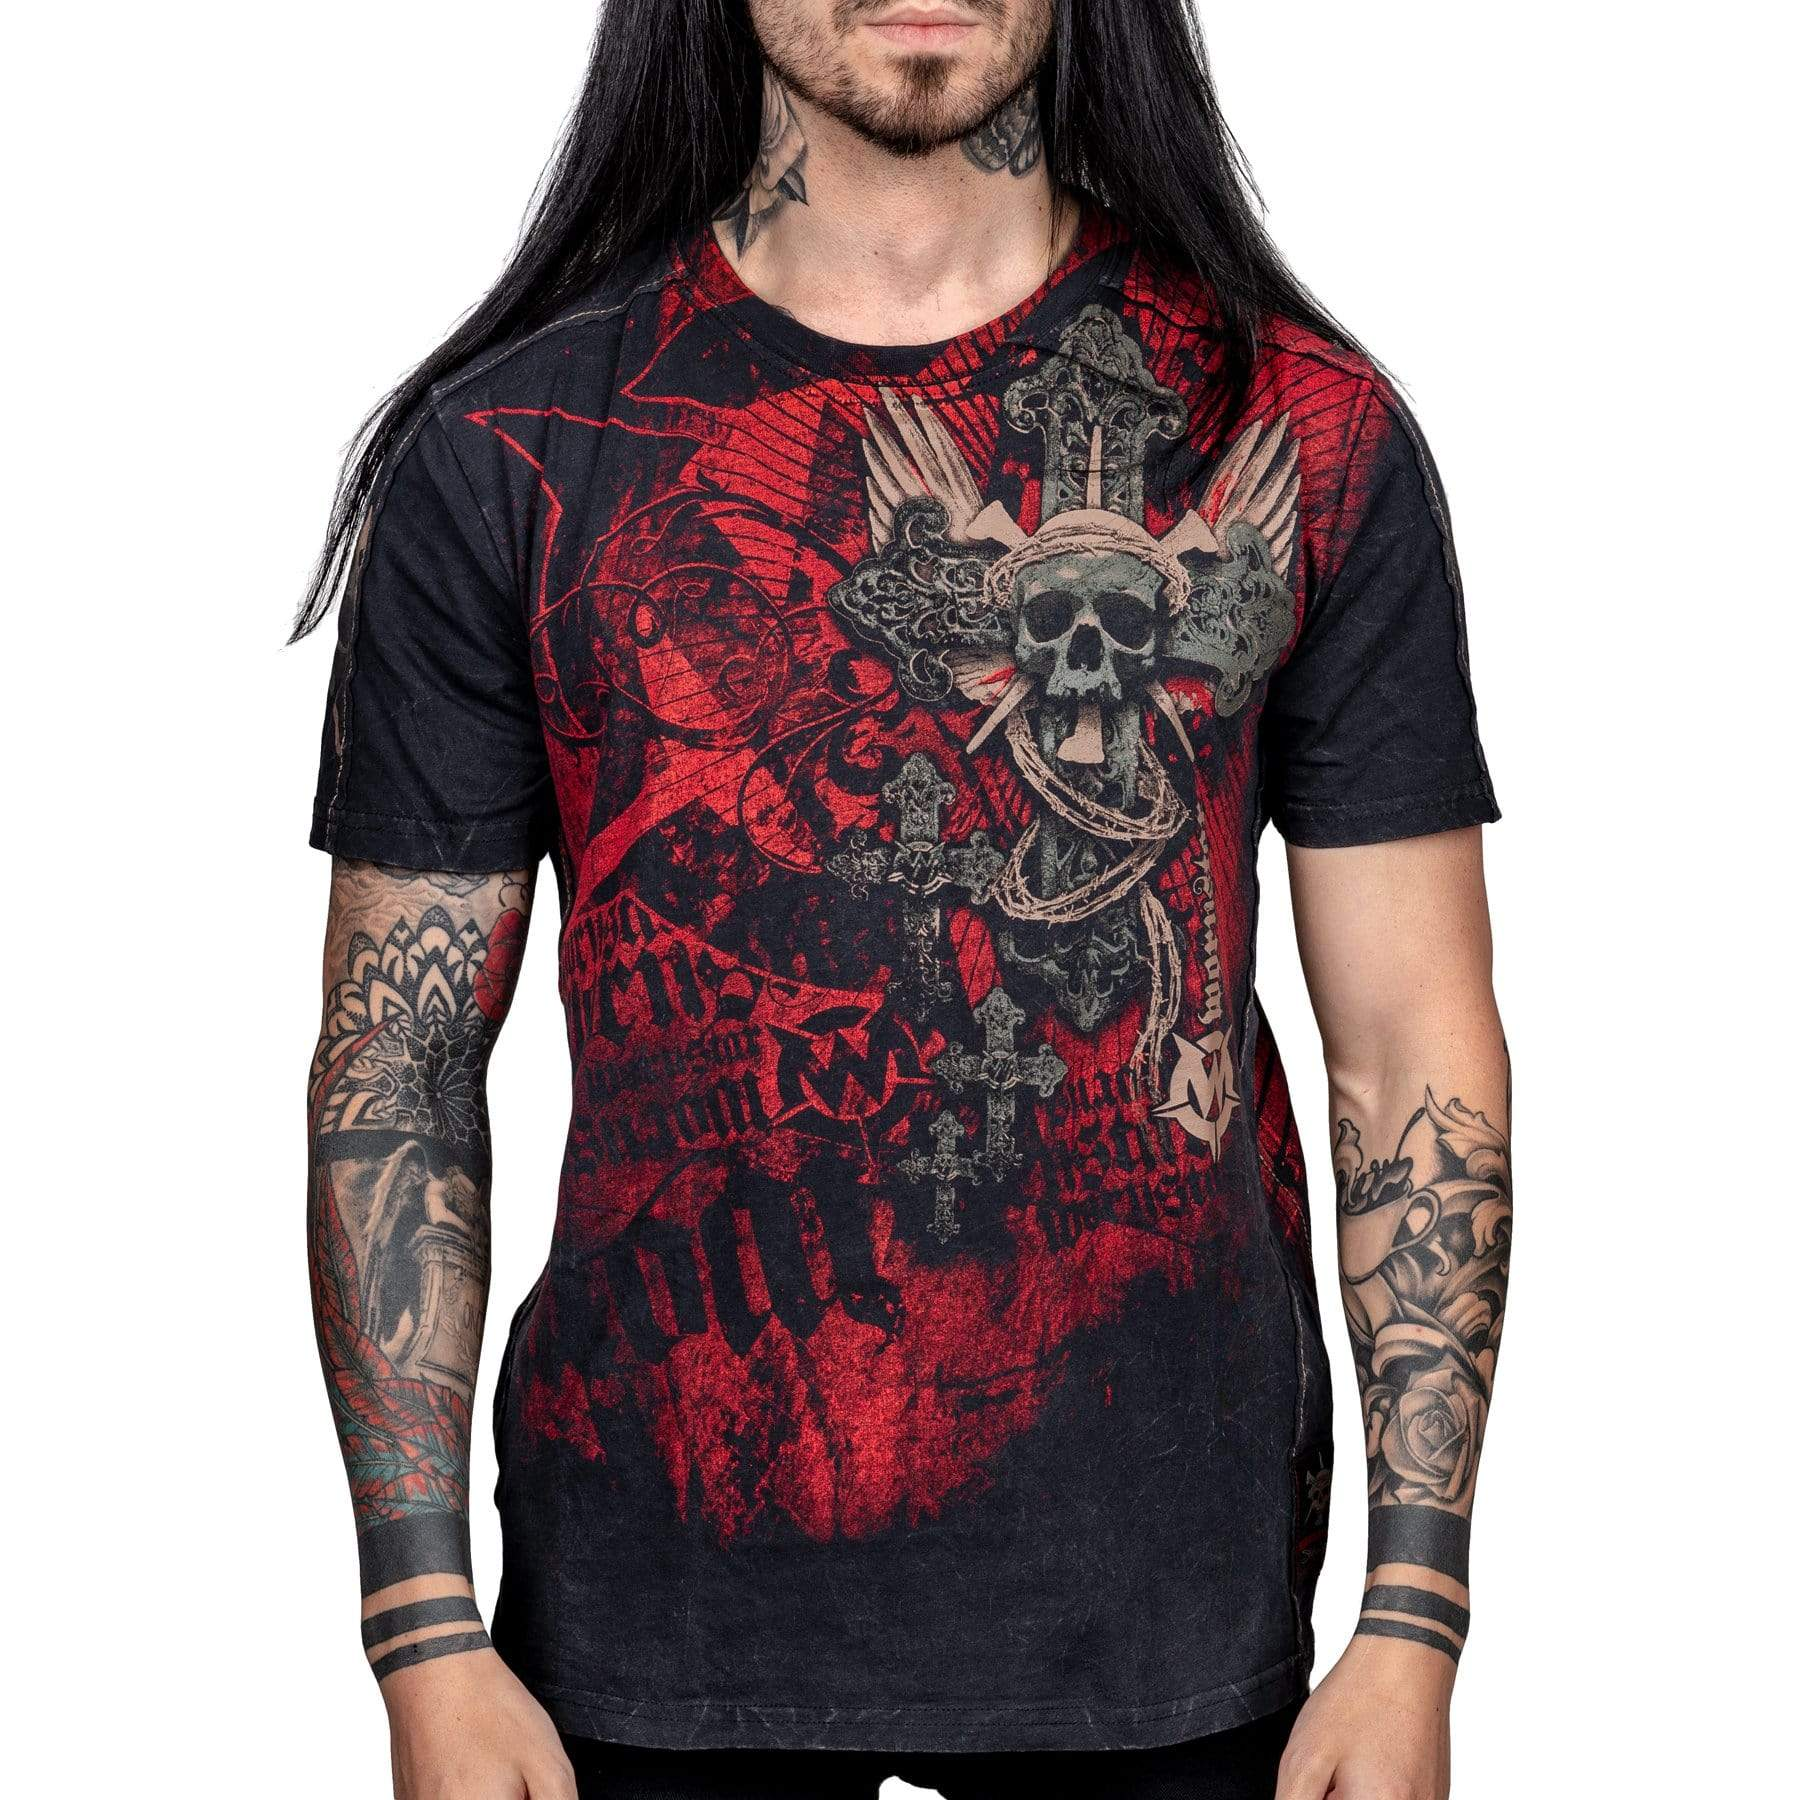 Wornstar Clothing Resurrection tee with printed skull, wings and cross graphic.